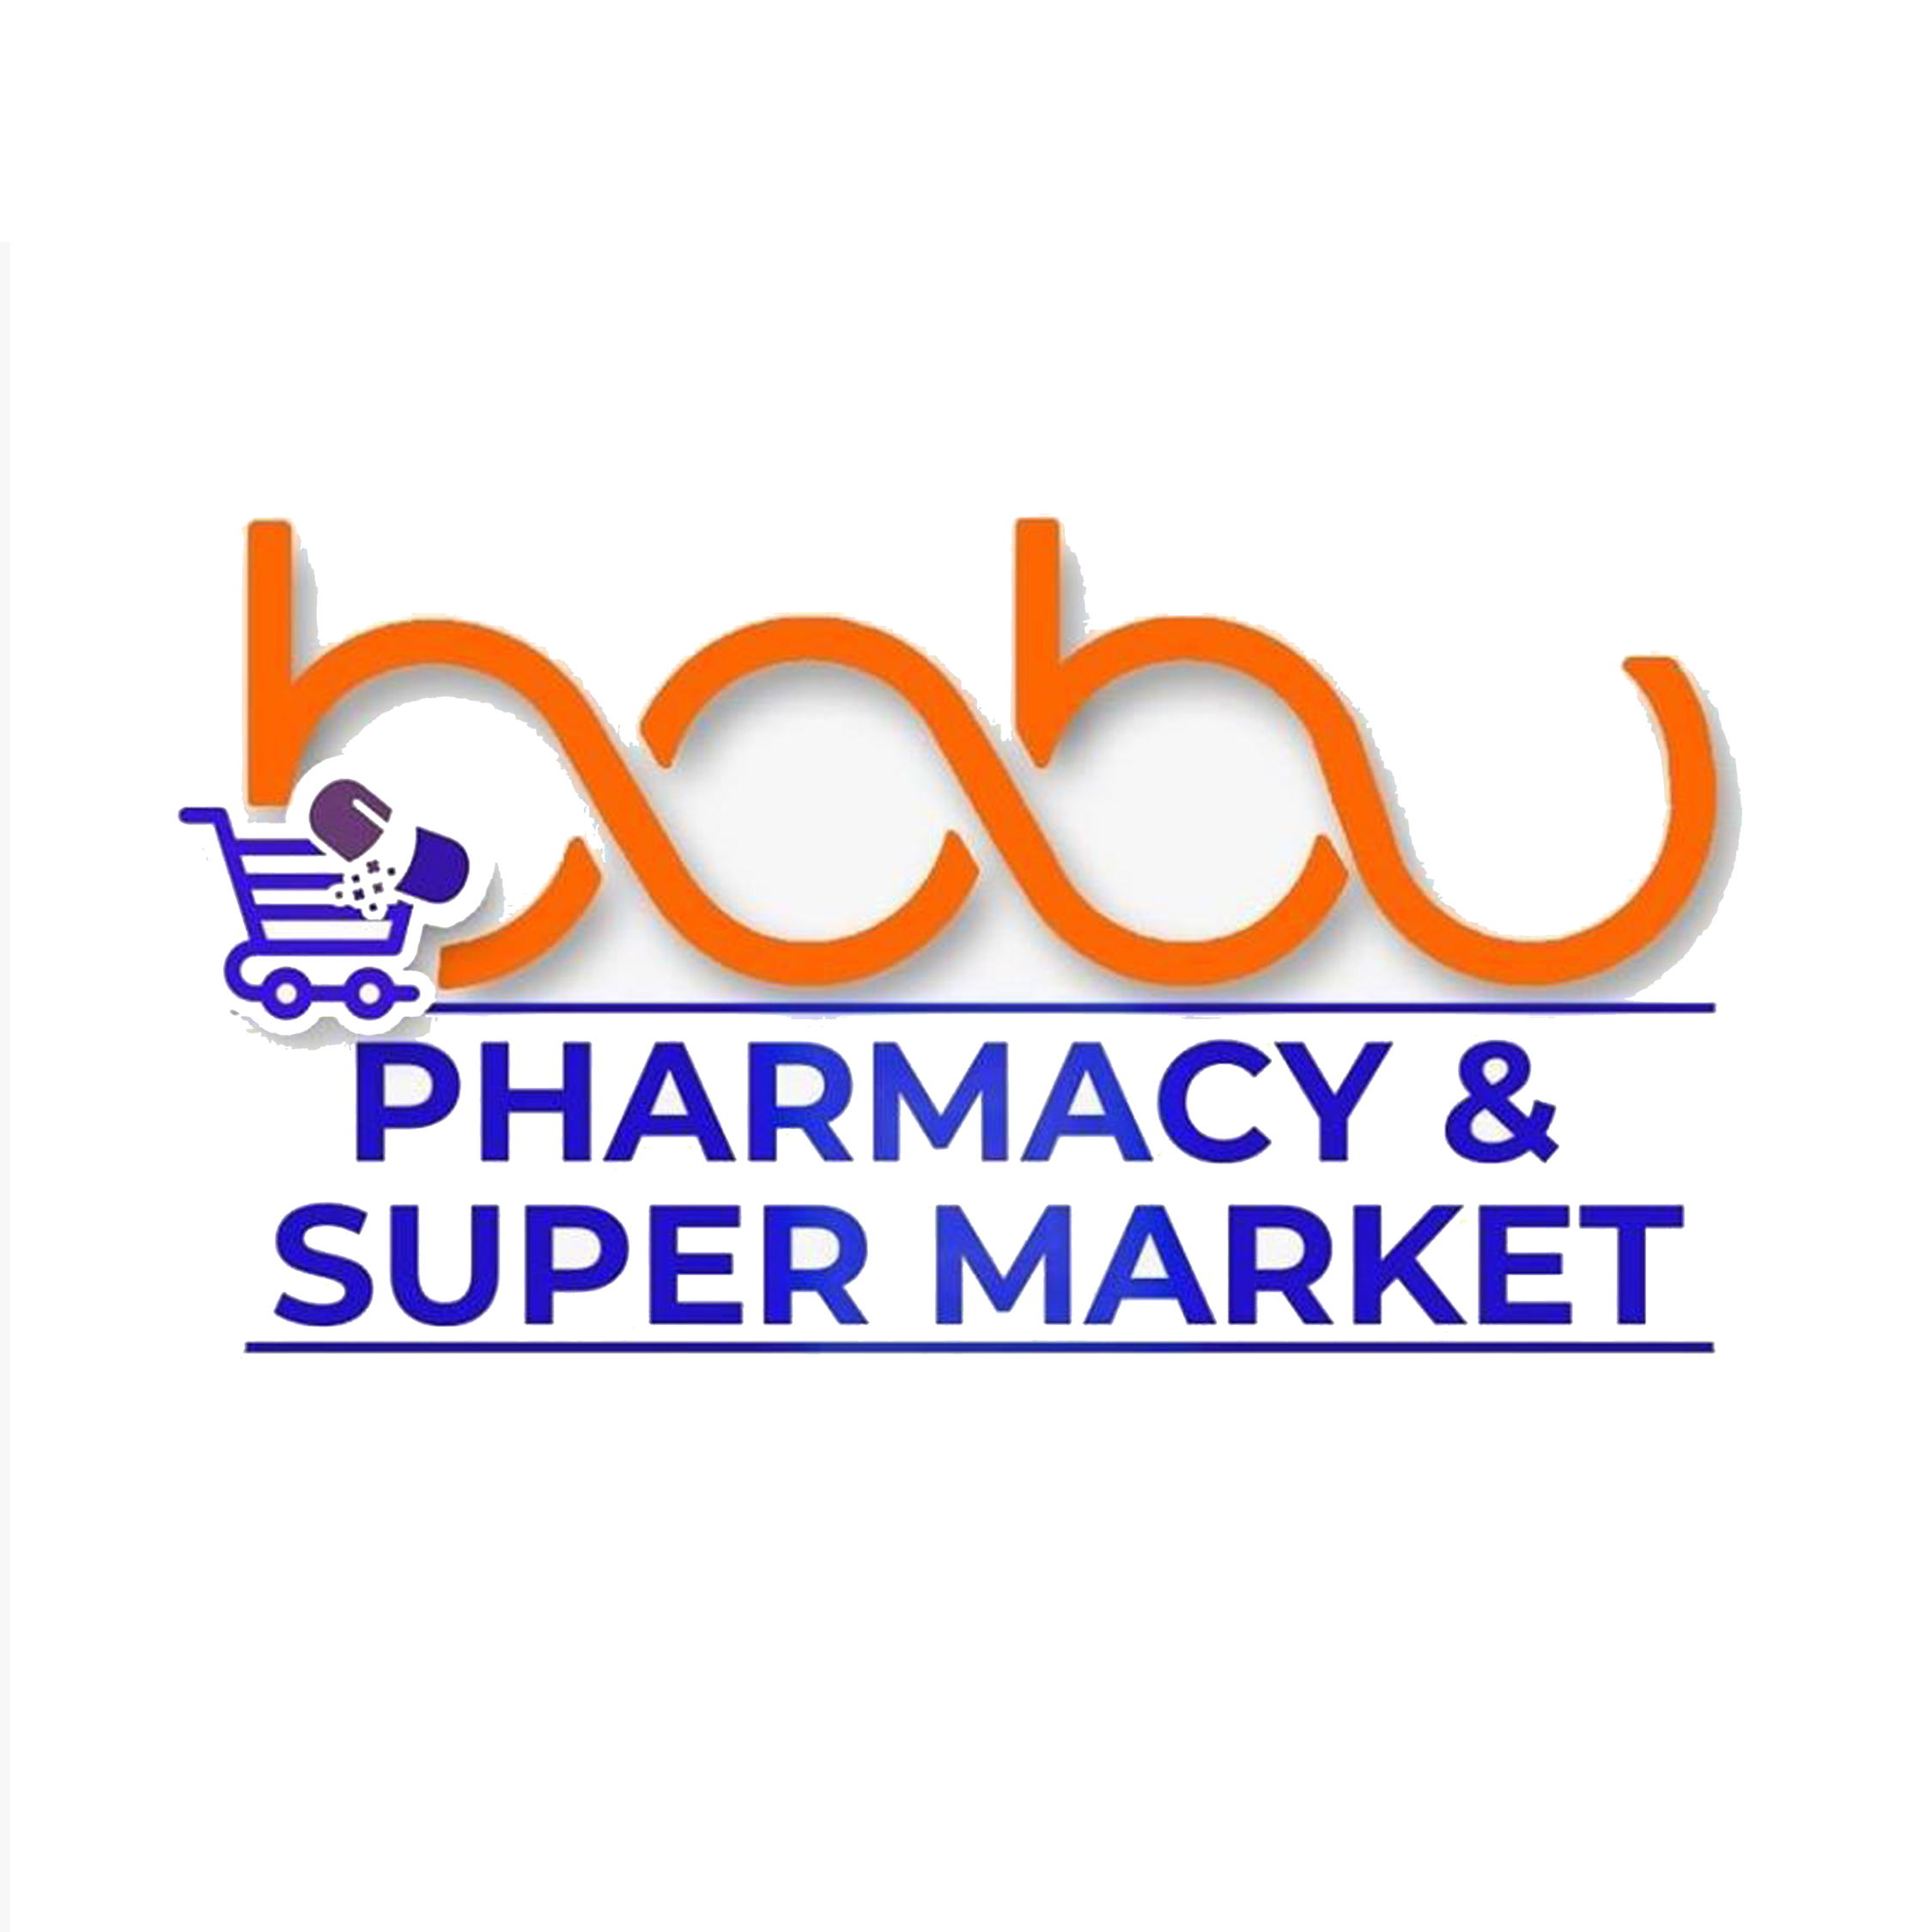 BABU Pharmacy & Supermarket